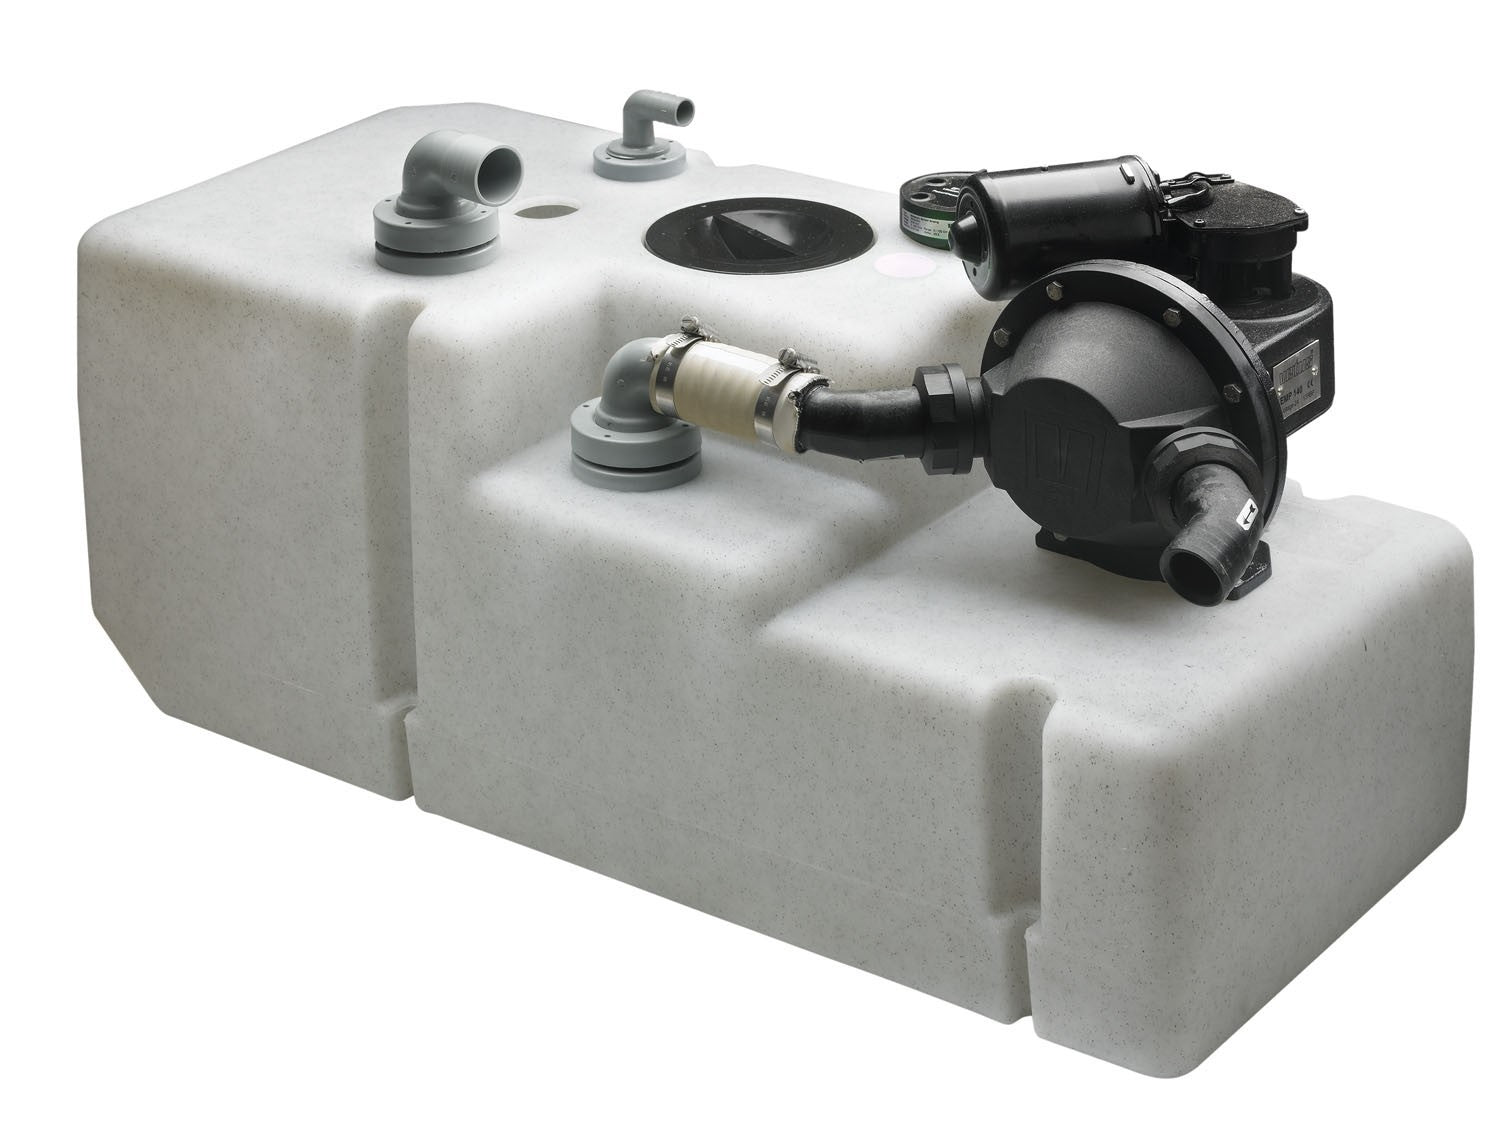 Vetus waste water tank system 61 ltrs, incl 24 volt pump, float and suction pipe (excl angled fittings)